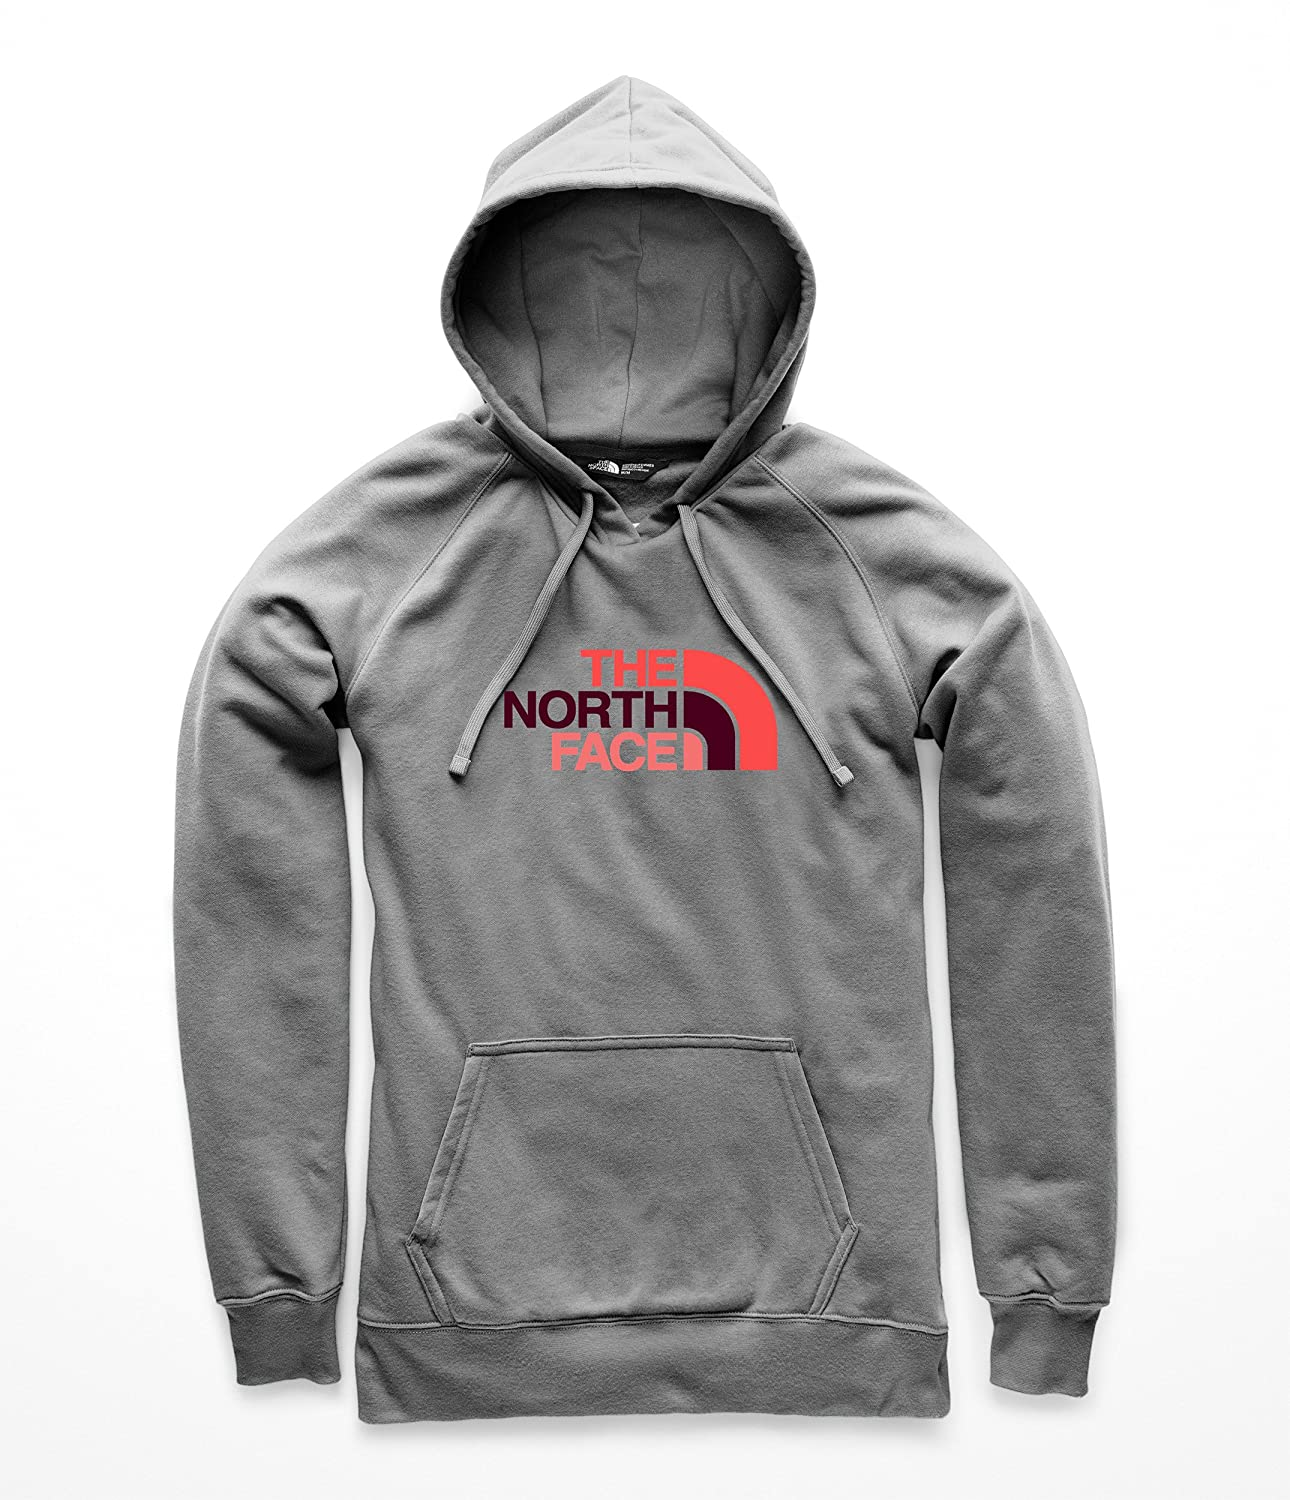 The North Face Women's Half Dome Pullover Hoodie A3NVW